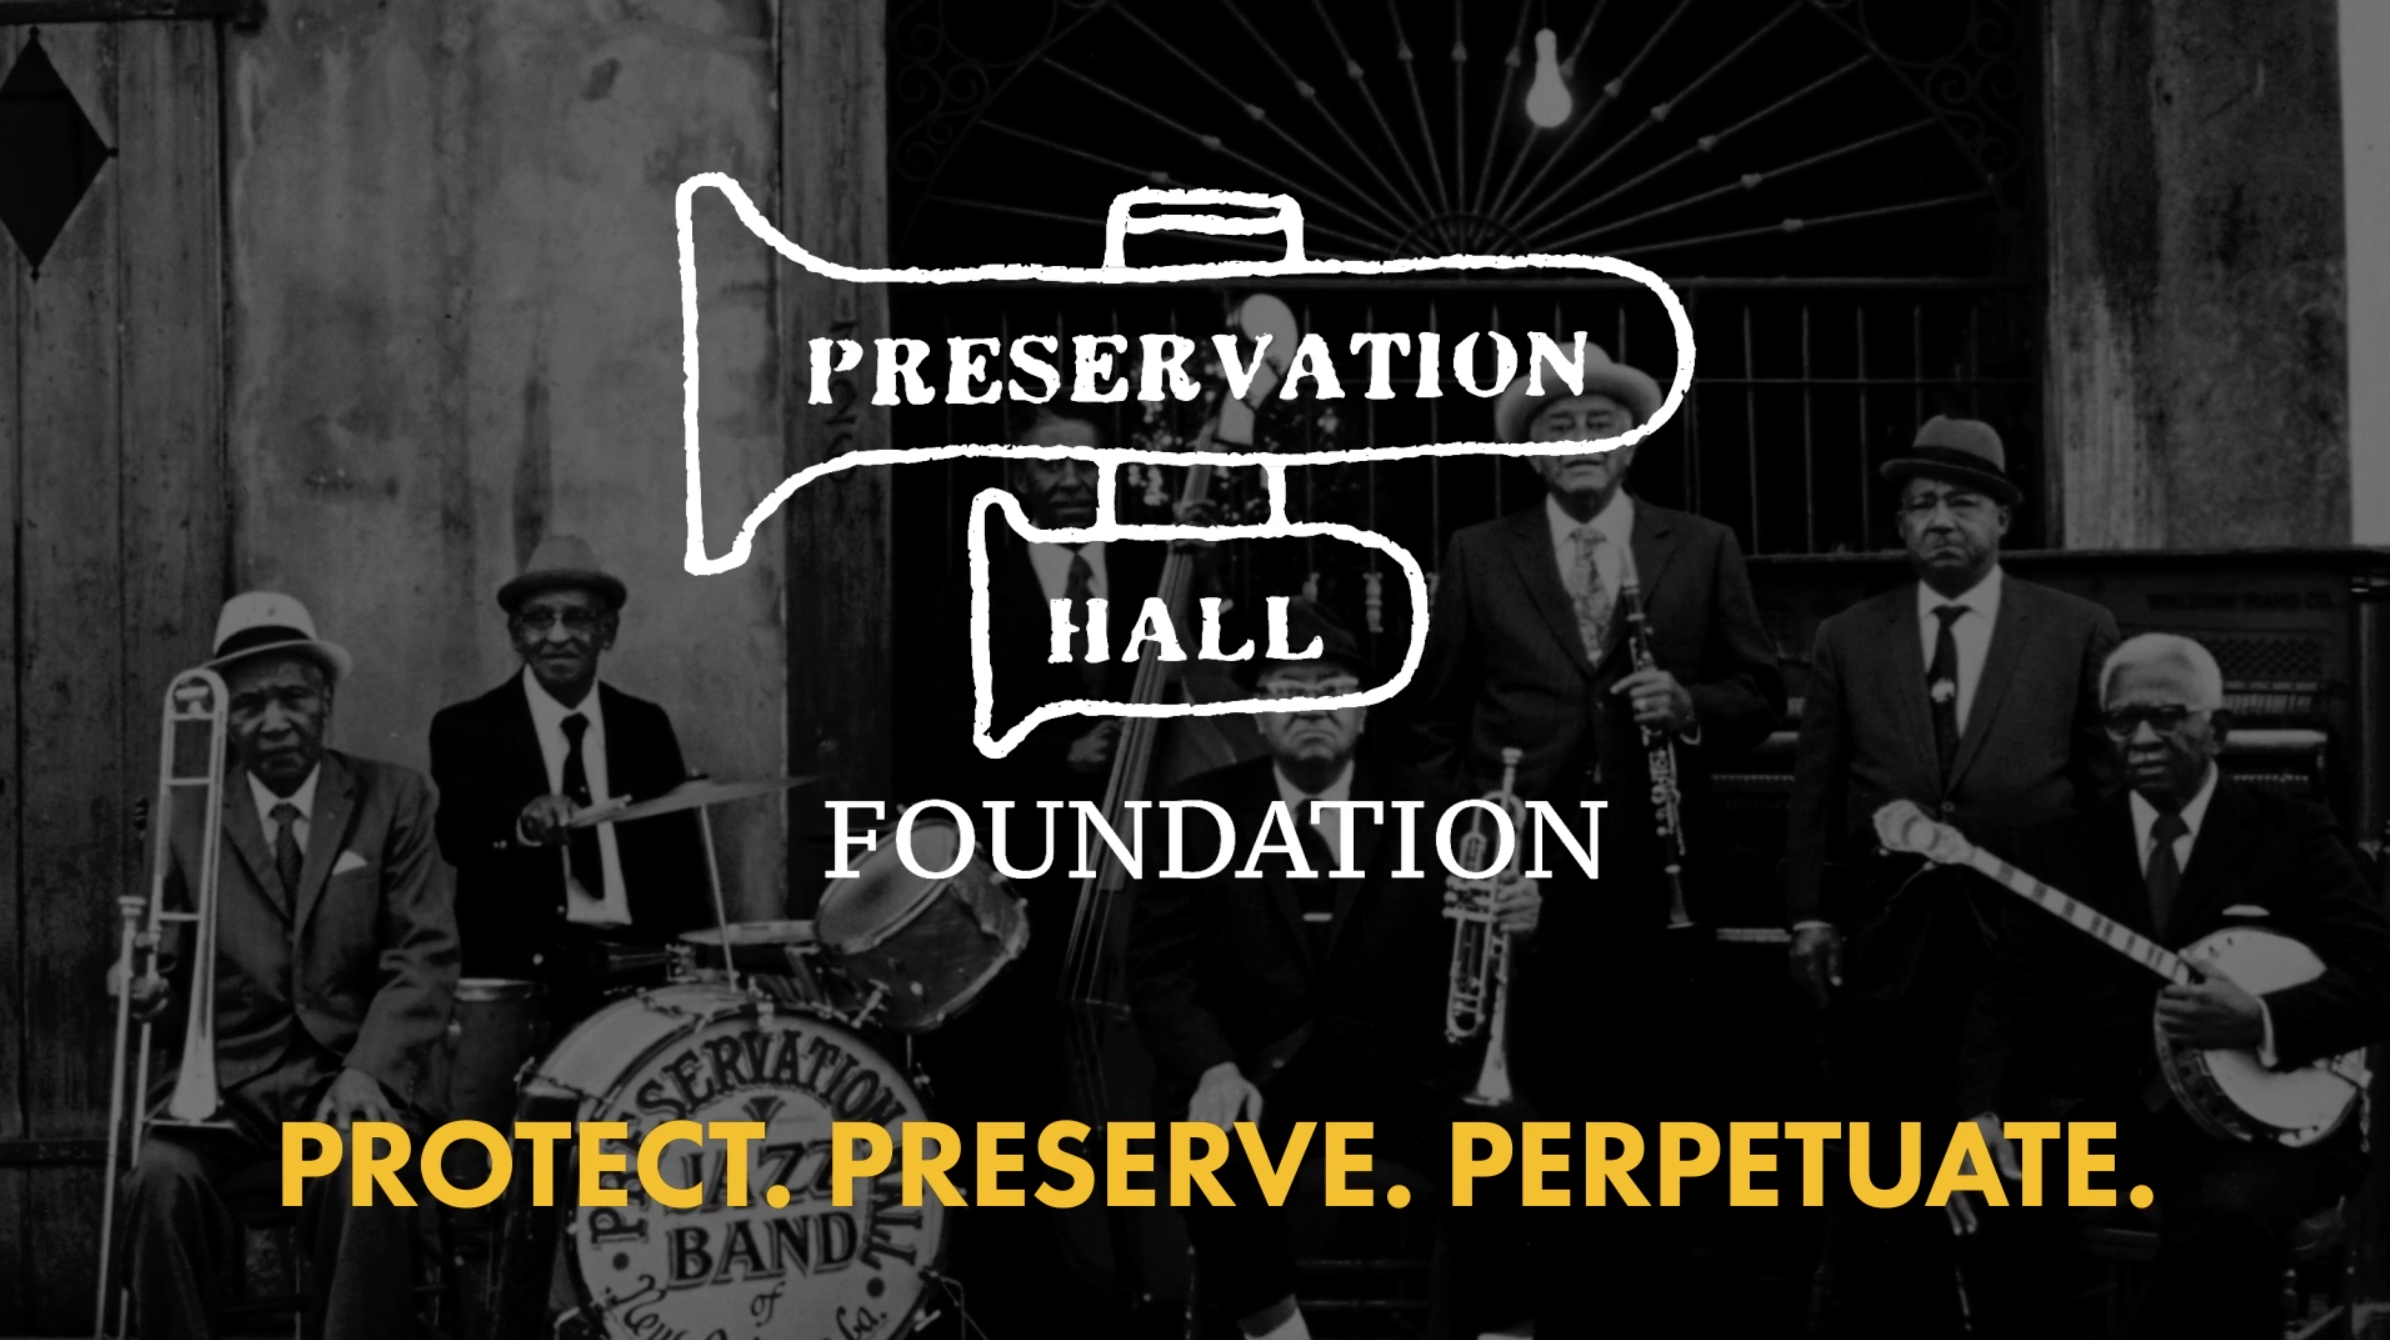 Preservation Hall Foundation